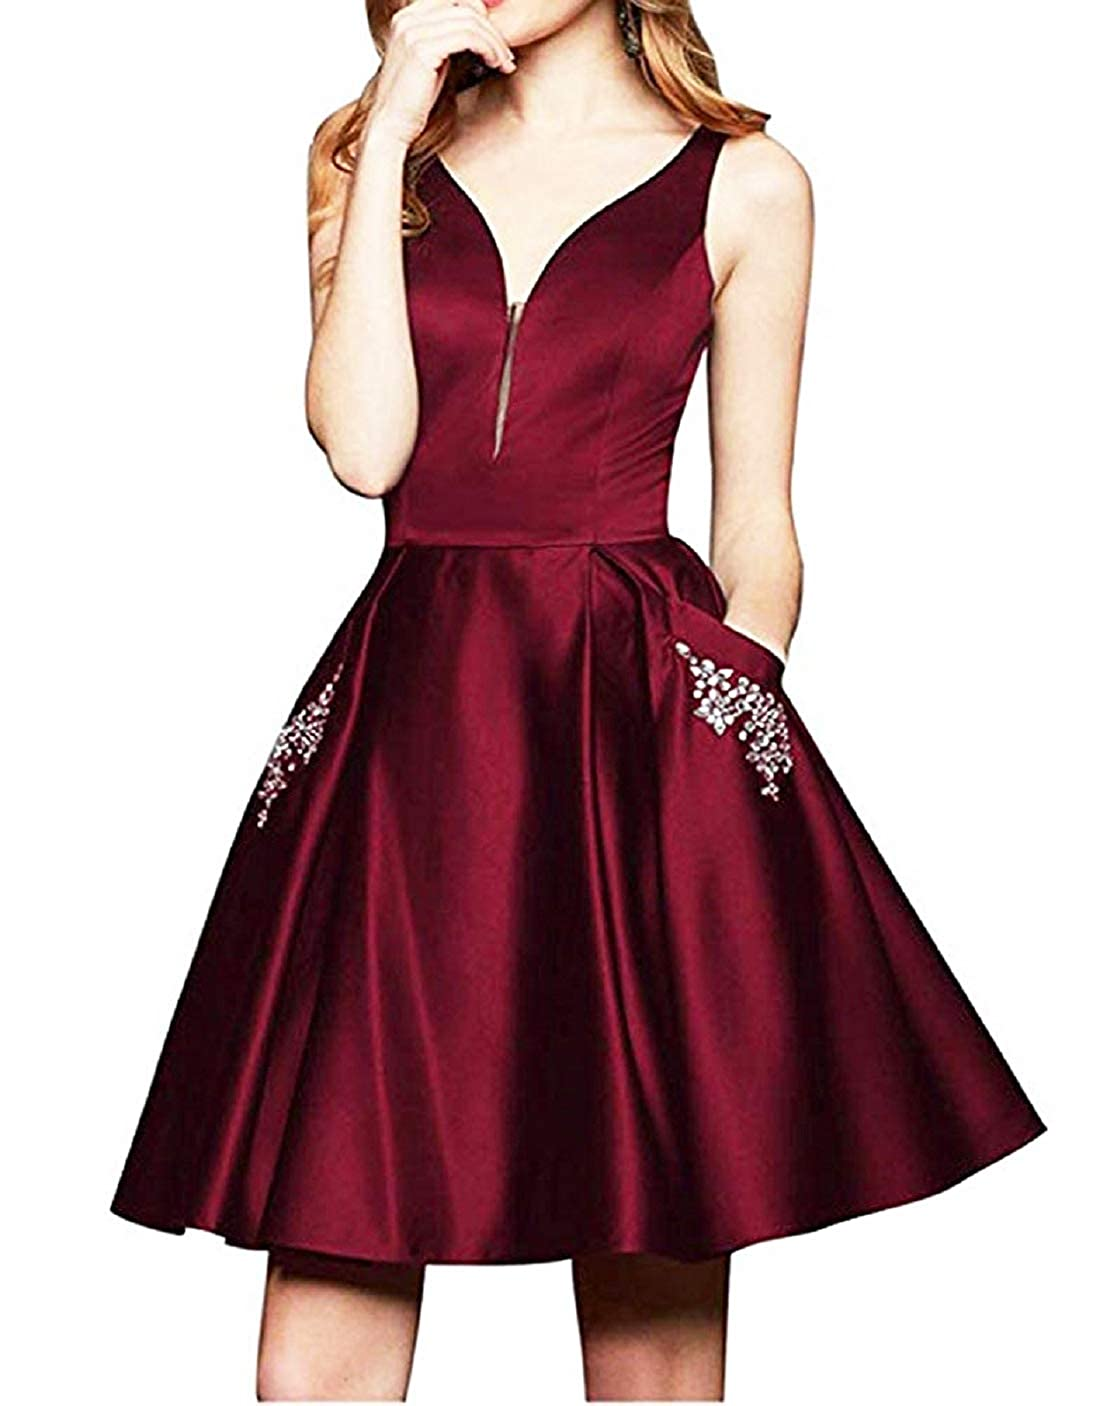 Homecoming Dresses Reliable 2018 Ball Gowns Short Graduation Homecoming Dresses Organza Zipper Back Violet Homecoming Cocktail Party Dress Short Strong Resistance To Heat And Hard Wearing